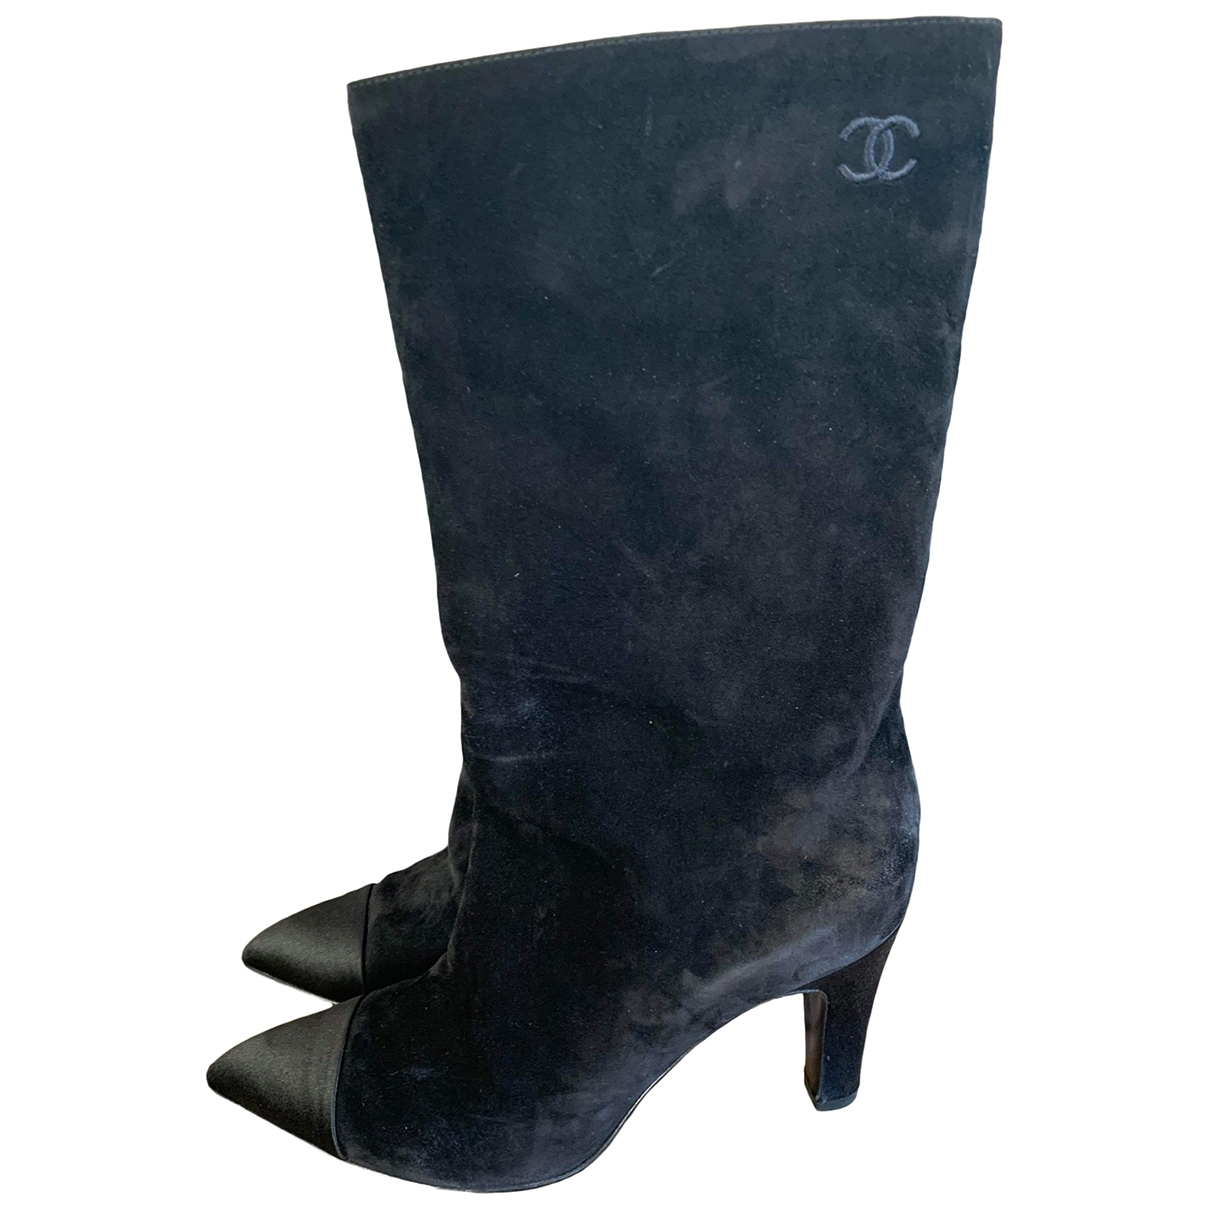 Chanel \N Black Suede Boots for Women 36.5 EU